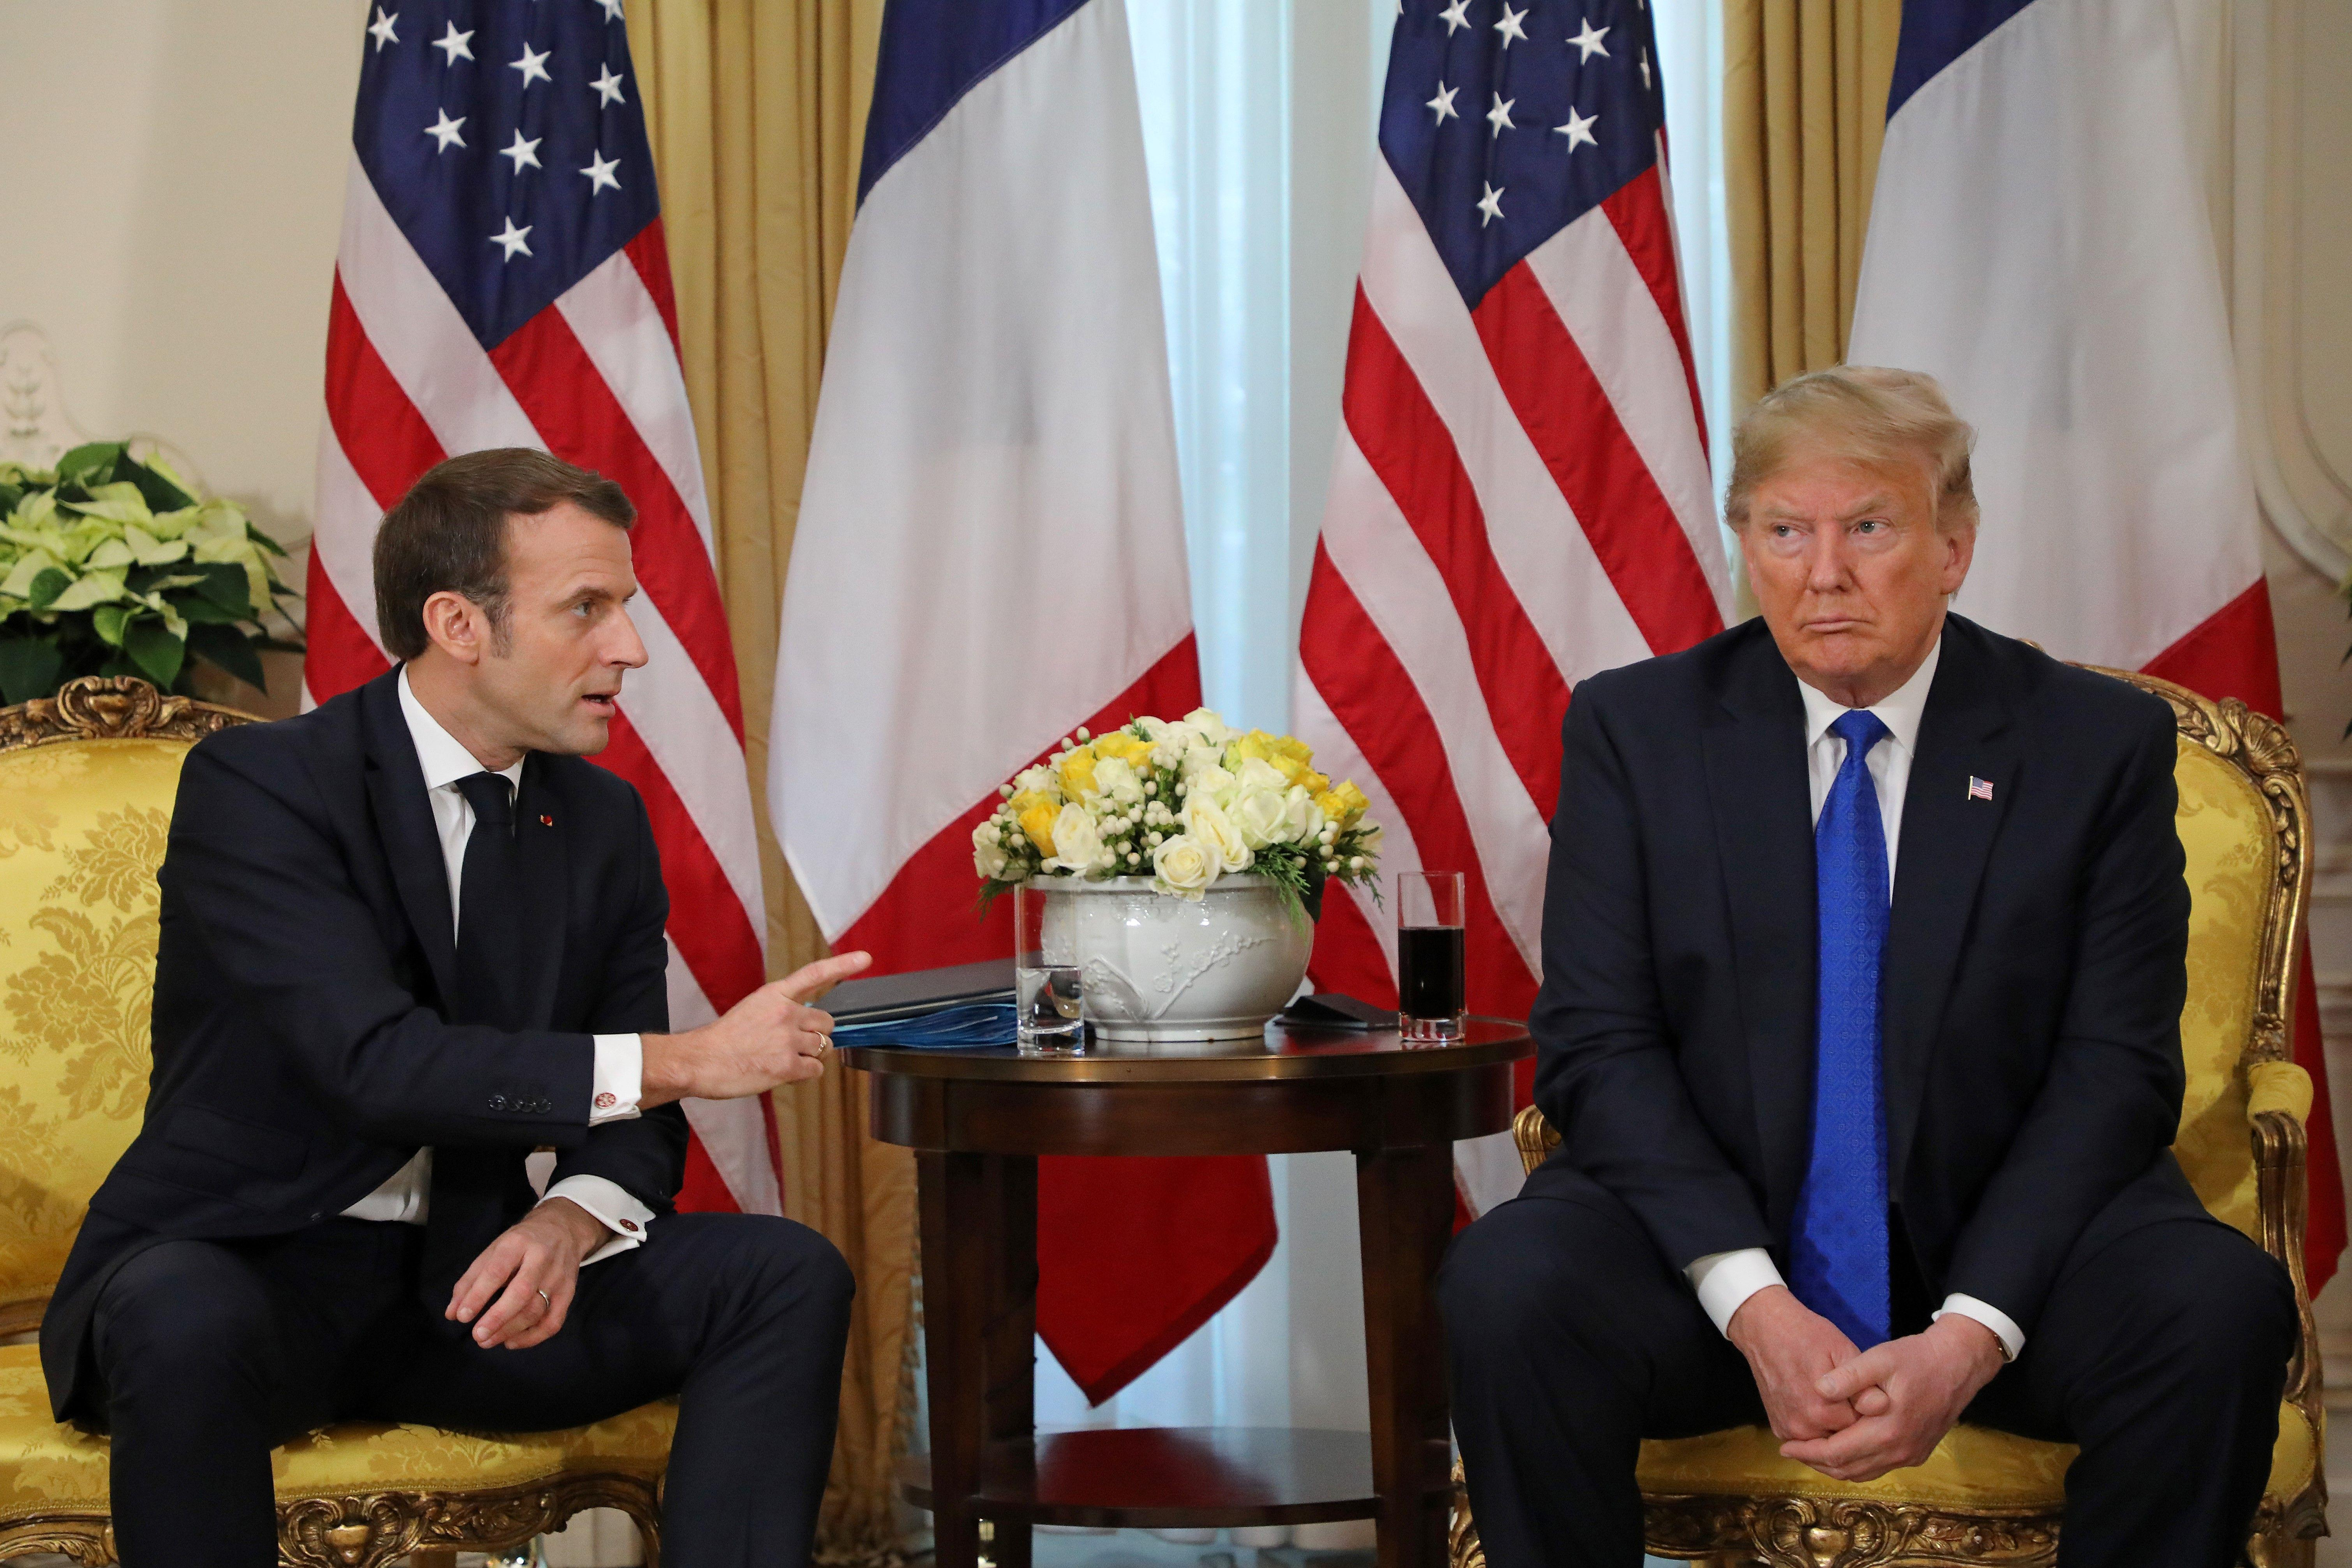 'Would you like some nice ISIS fighters?' Trump trolls Macron at NATO summit